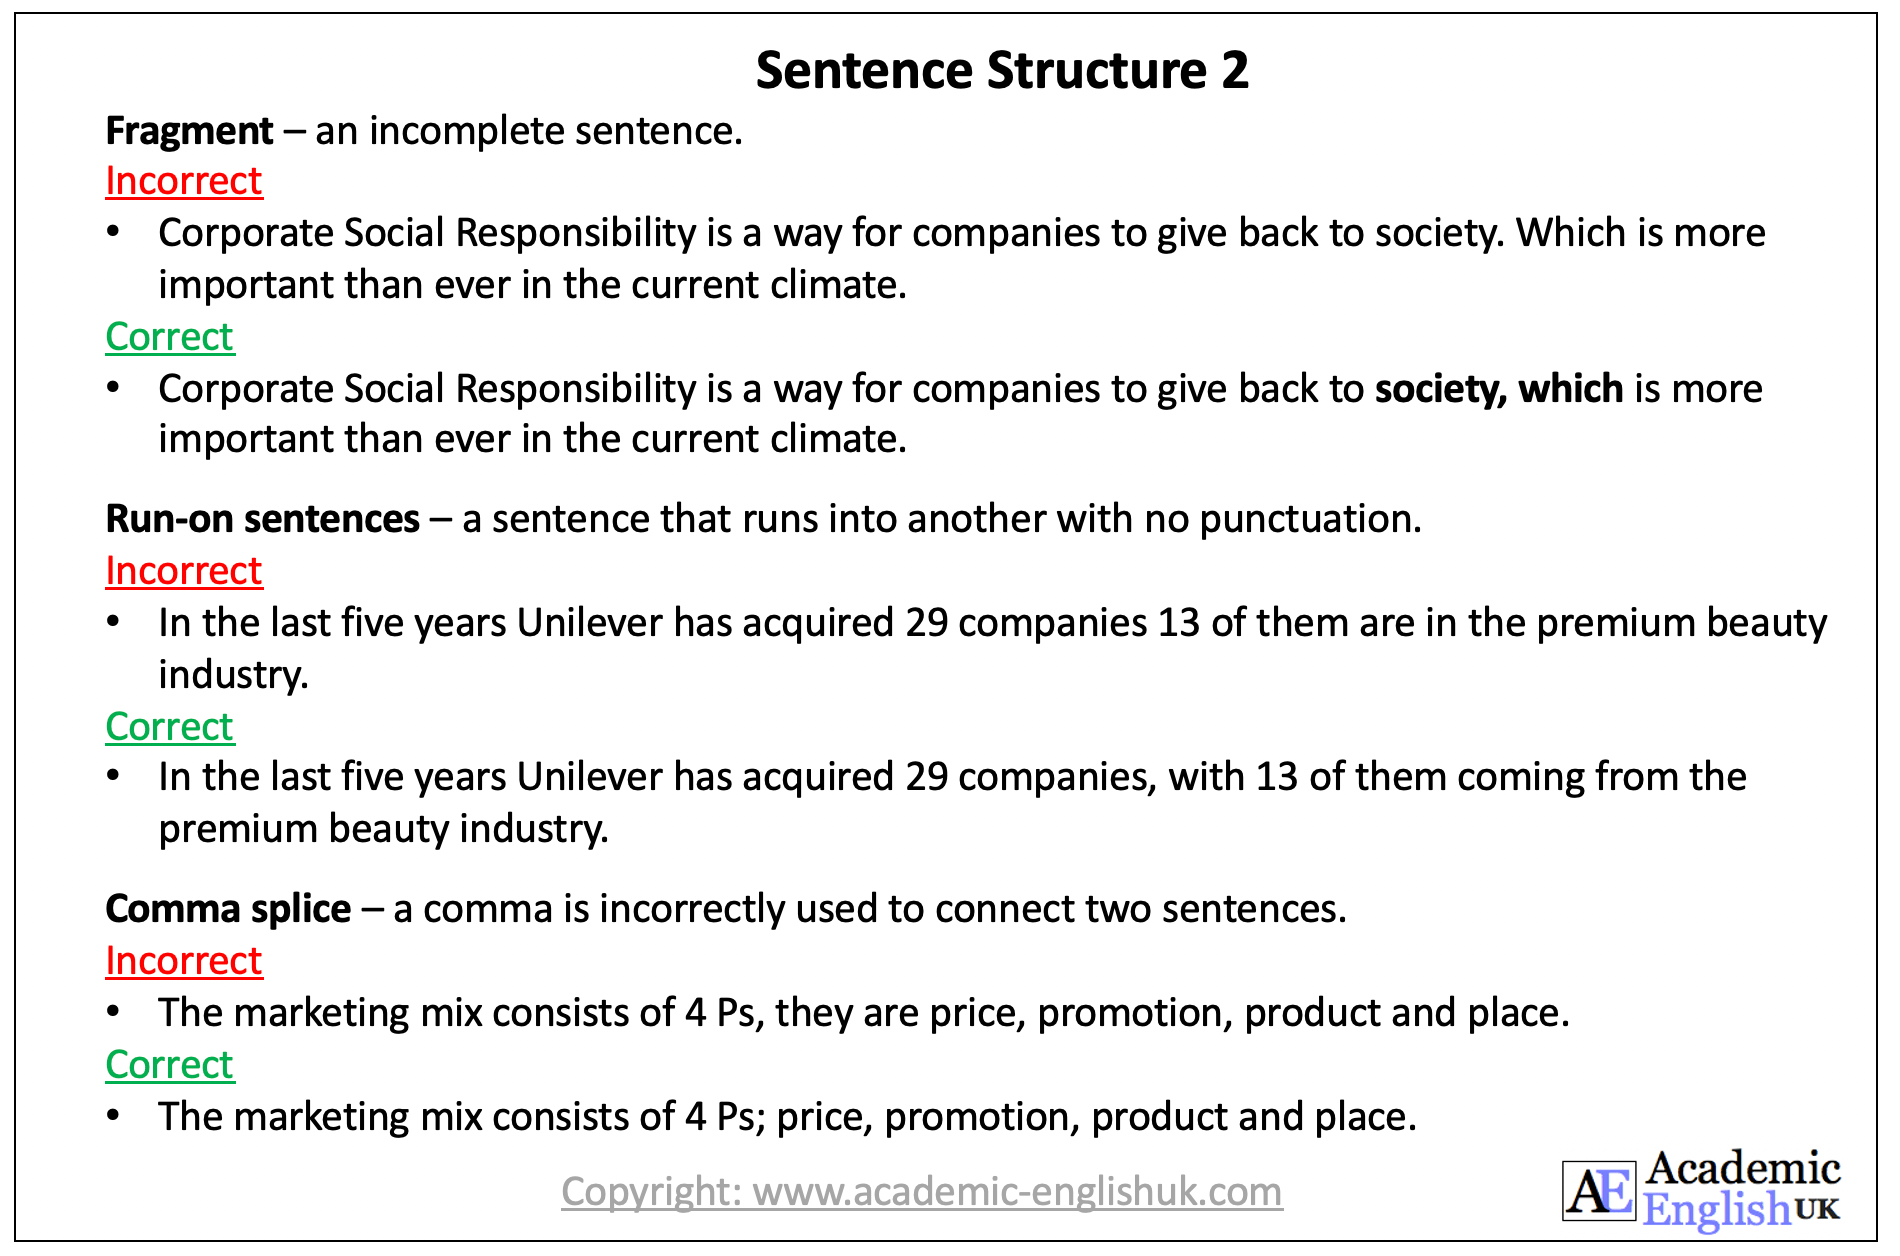 sentence structure 2 Aeuk